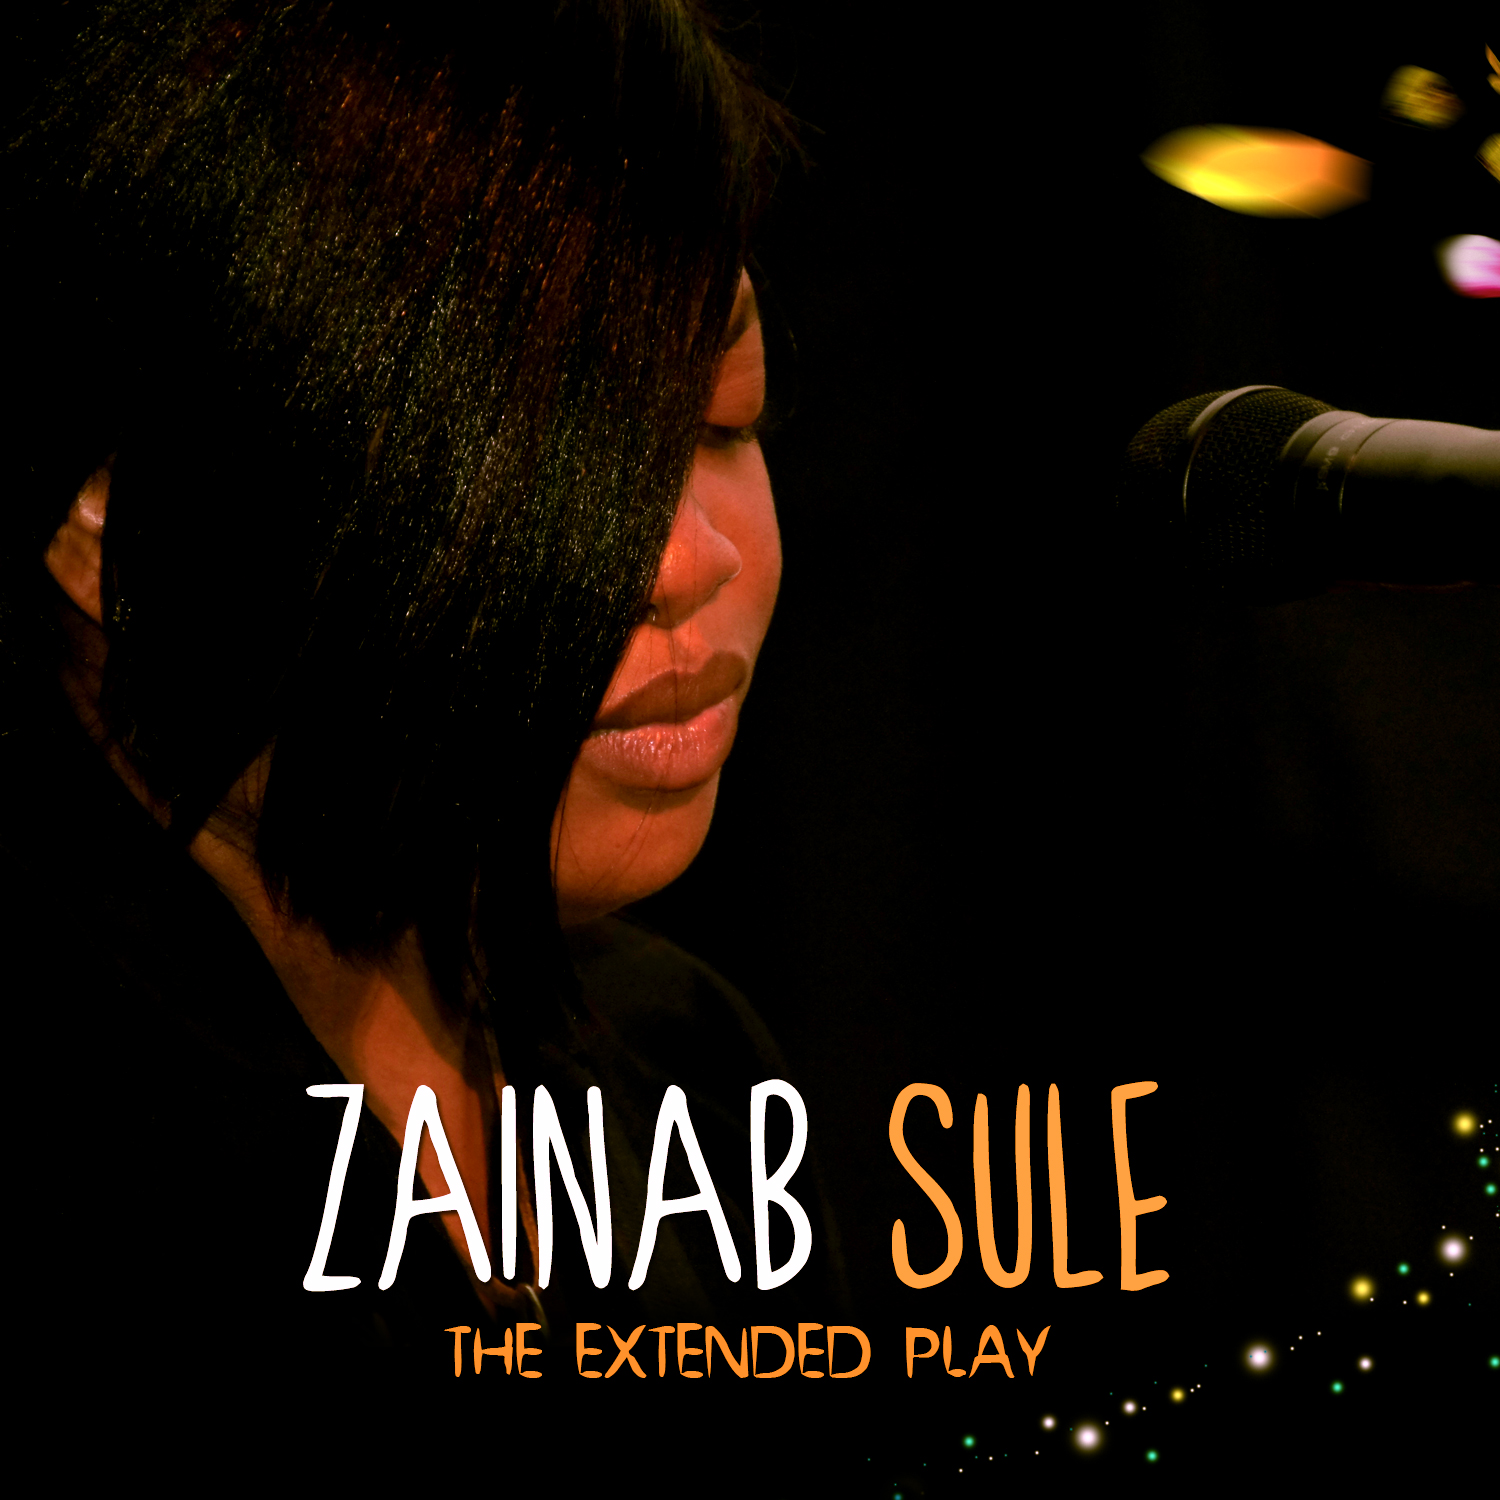 Zainab Sule - The Extended Play